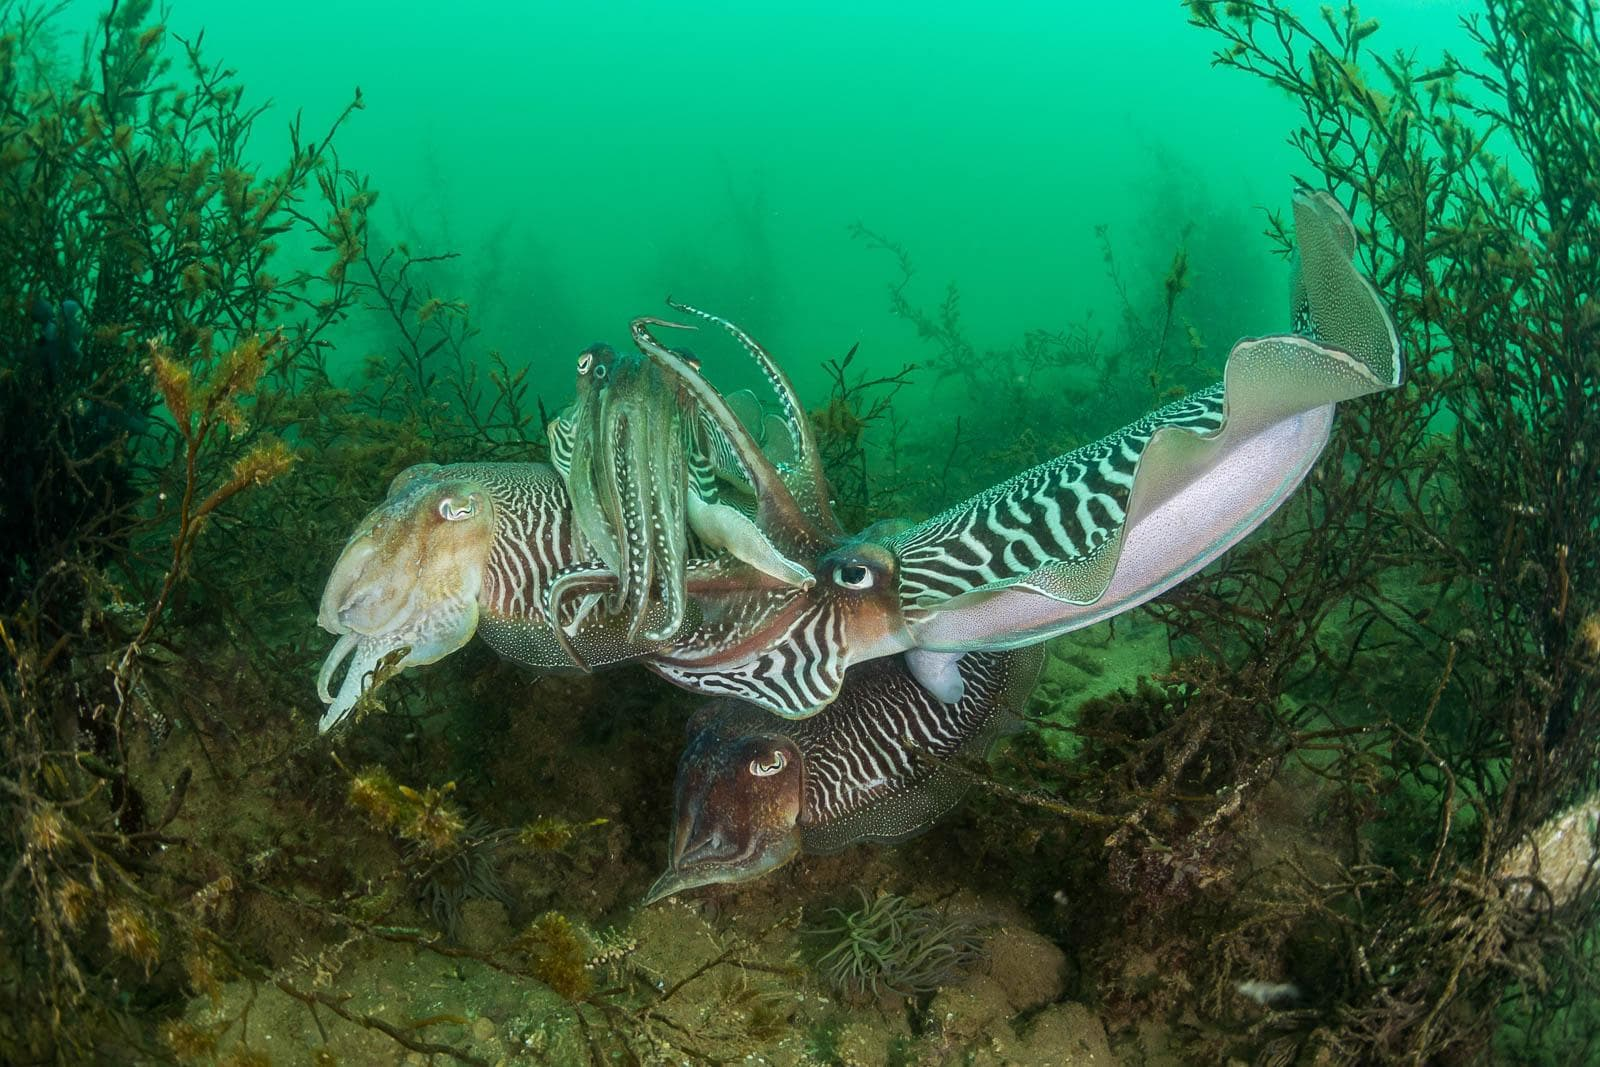 Cuttlefishes by Dan Bolt